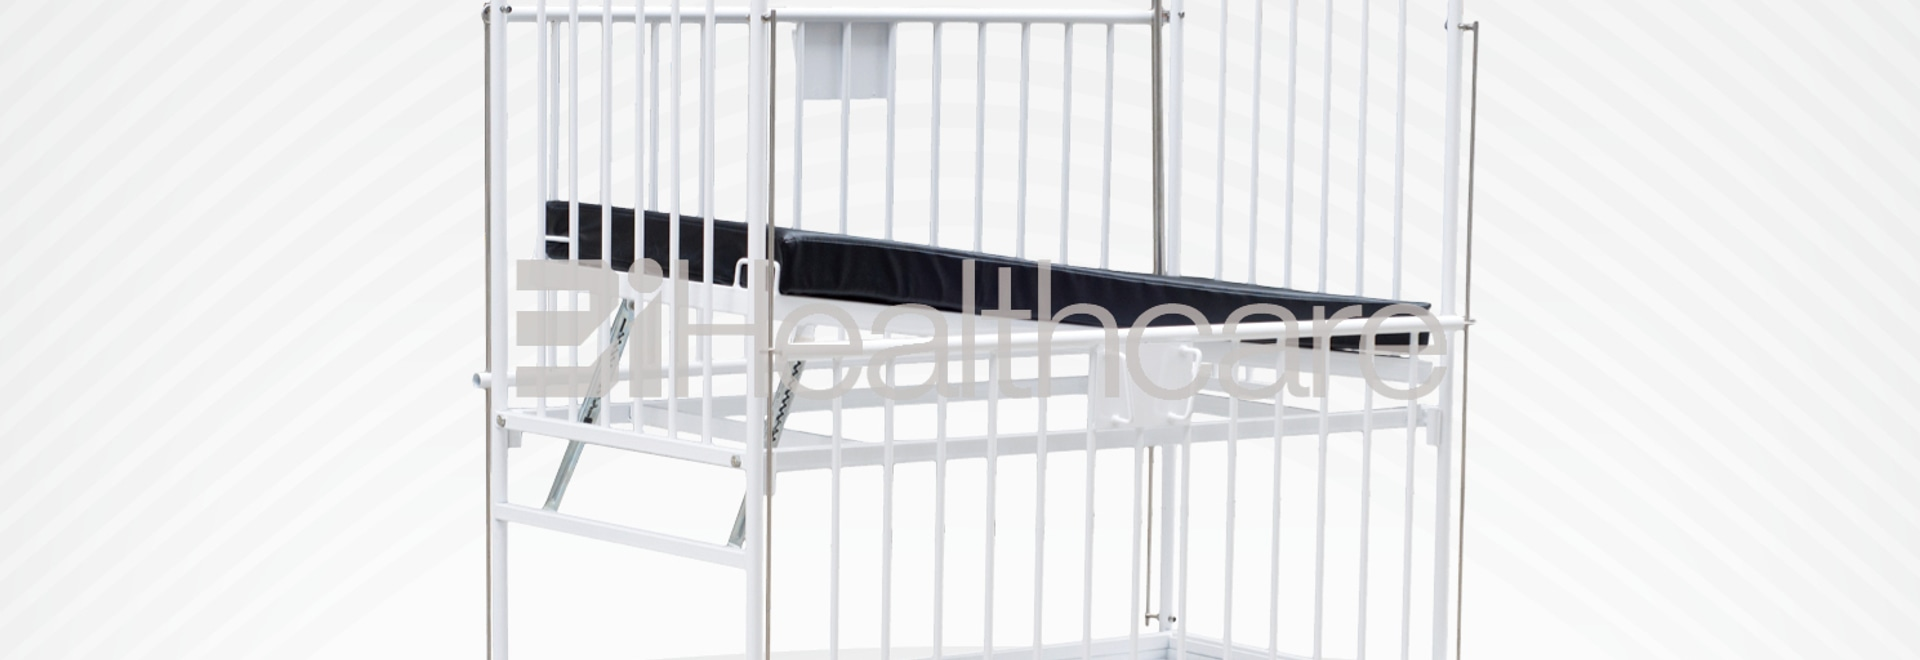 Full guard side rail pediatric hospital bed from BiHealthcare